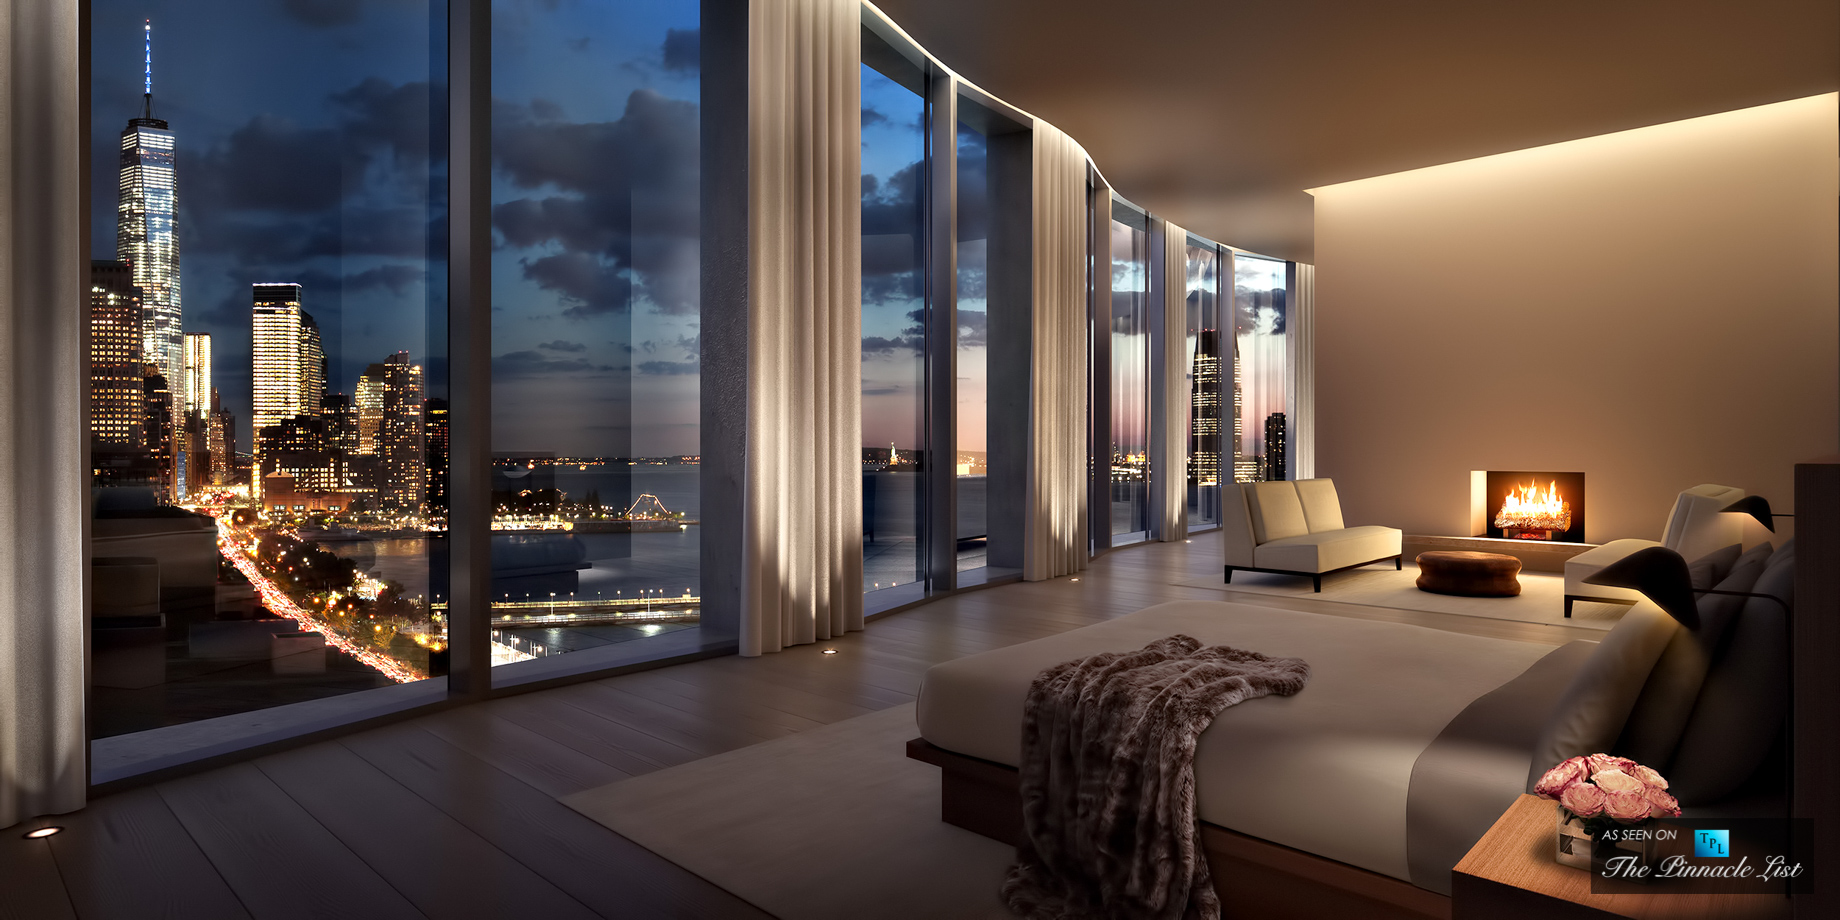 160 LEROY - New York Luxury Condos